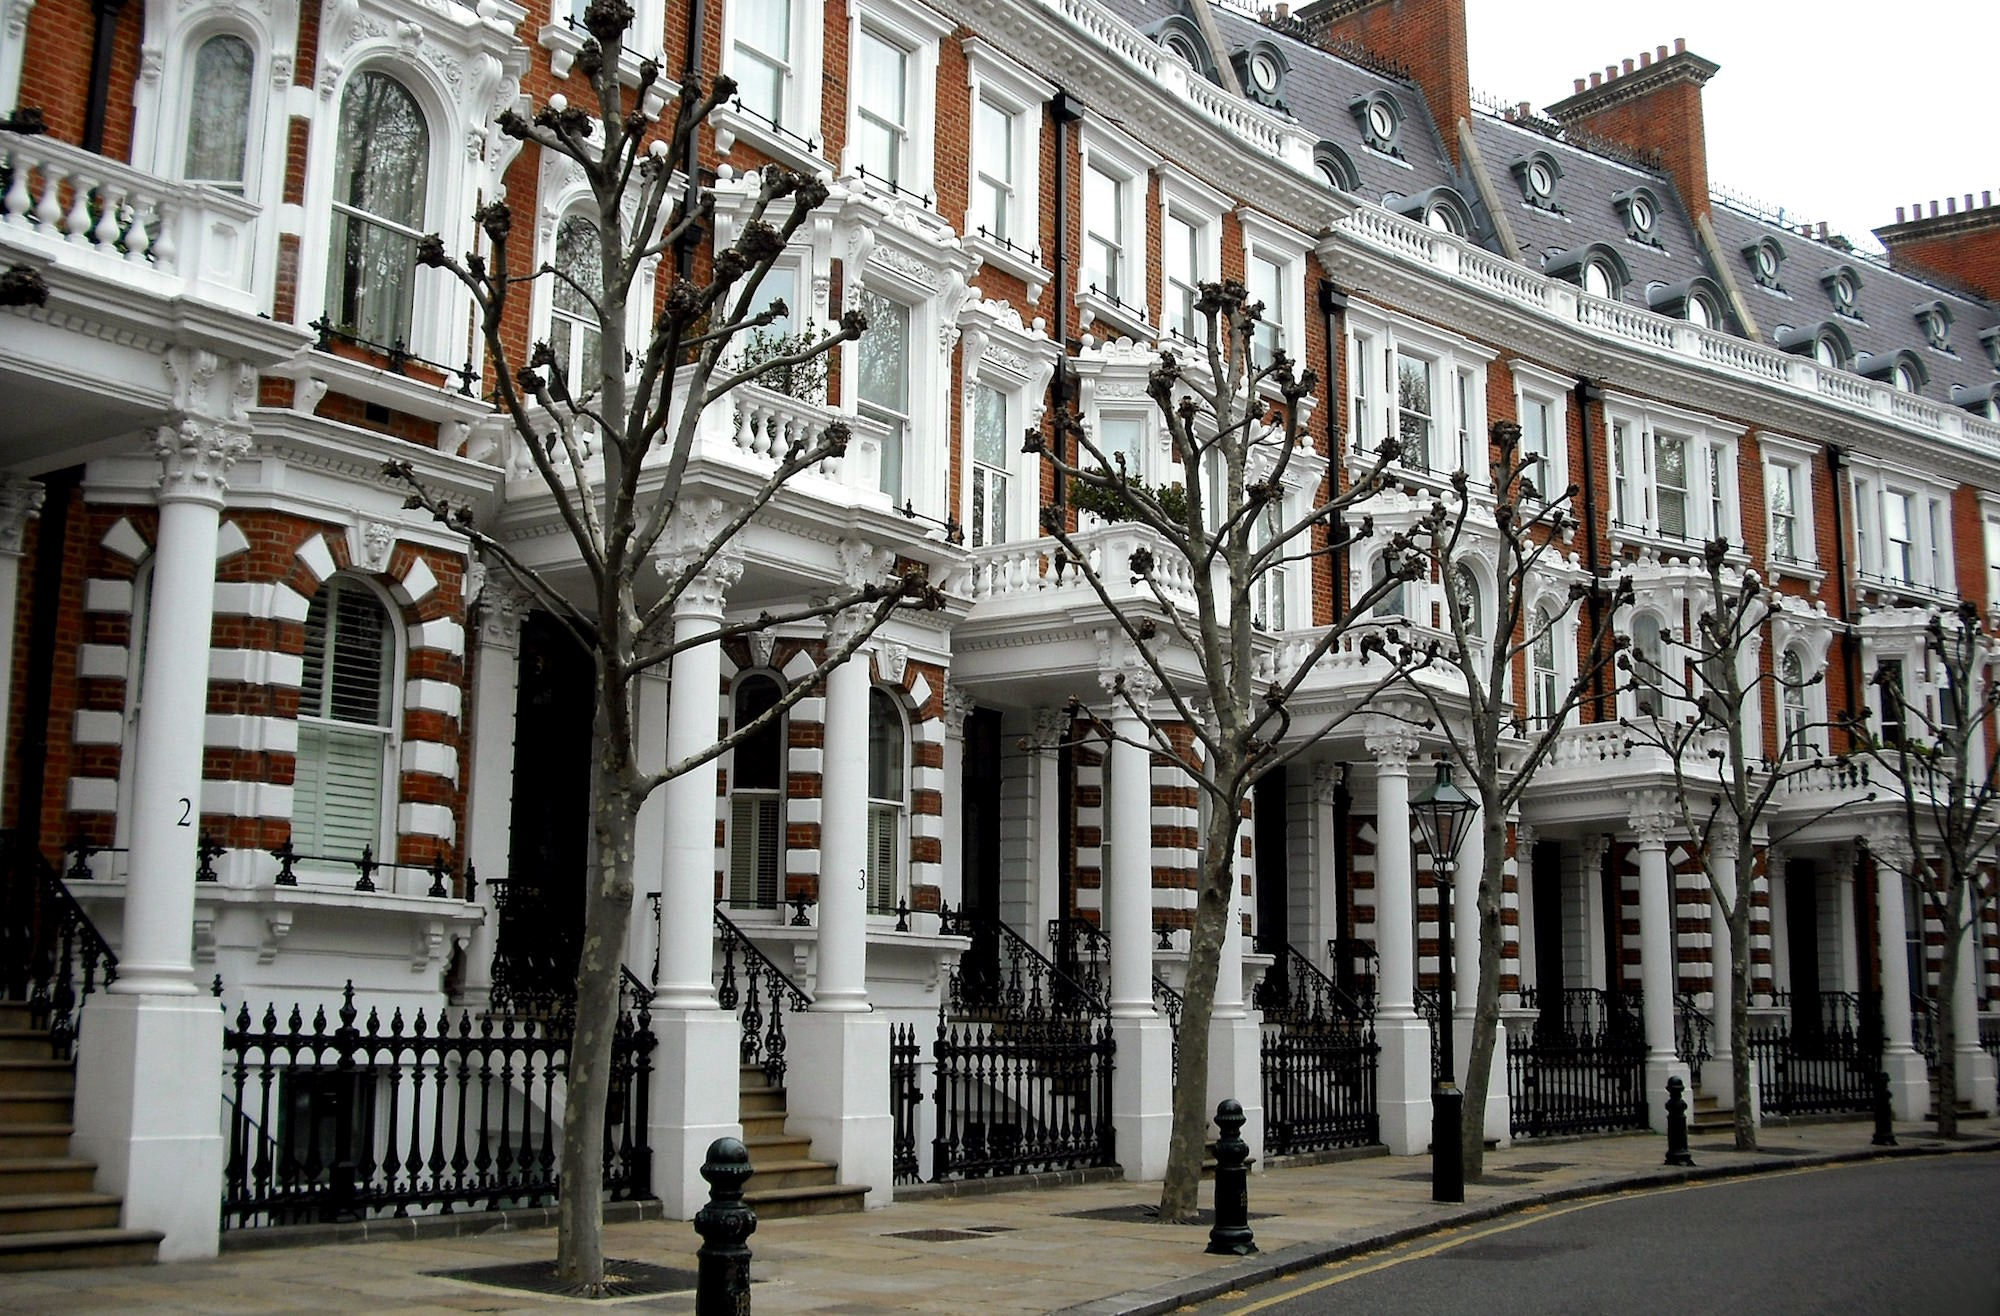 Kensington Is One Of The Best Area To Stay In London For Tourists